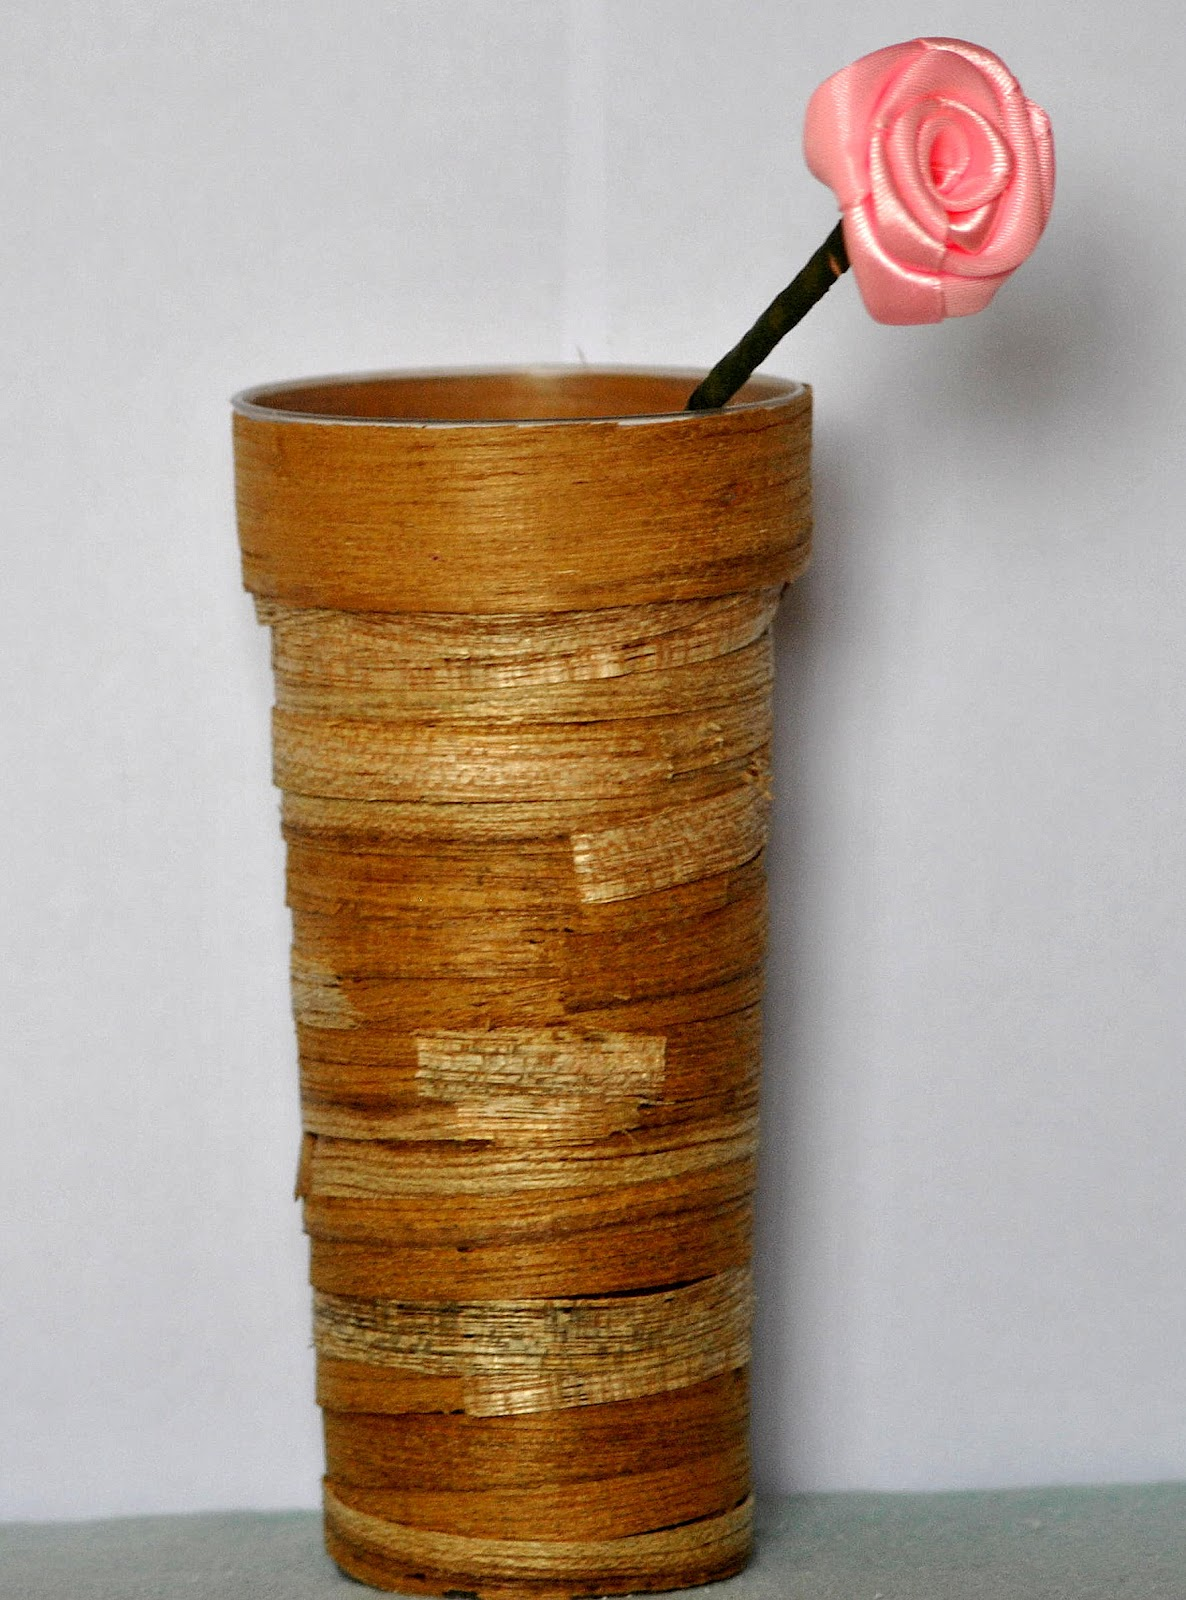 Recycled wood scrape flower vase crafts and handmade for Handmade flower vase with waste material